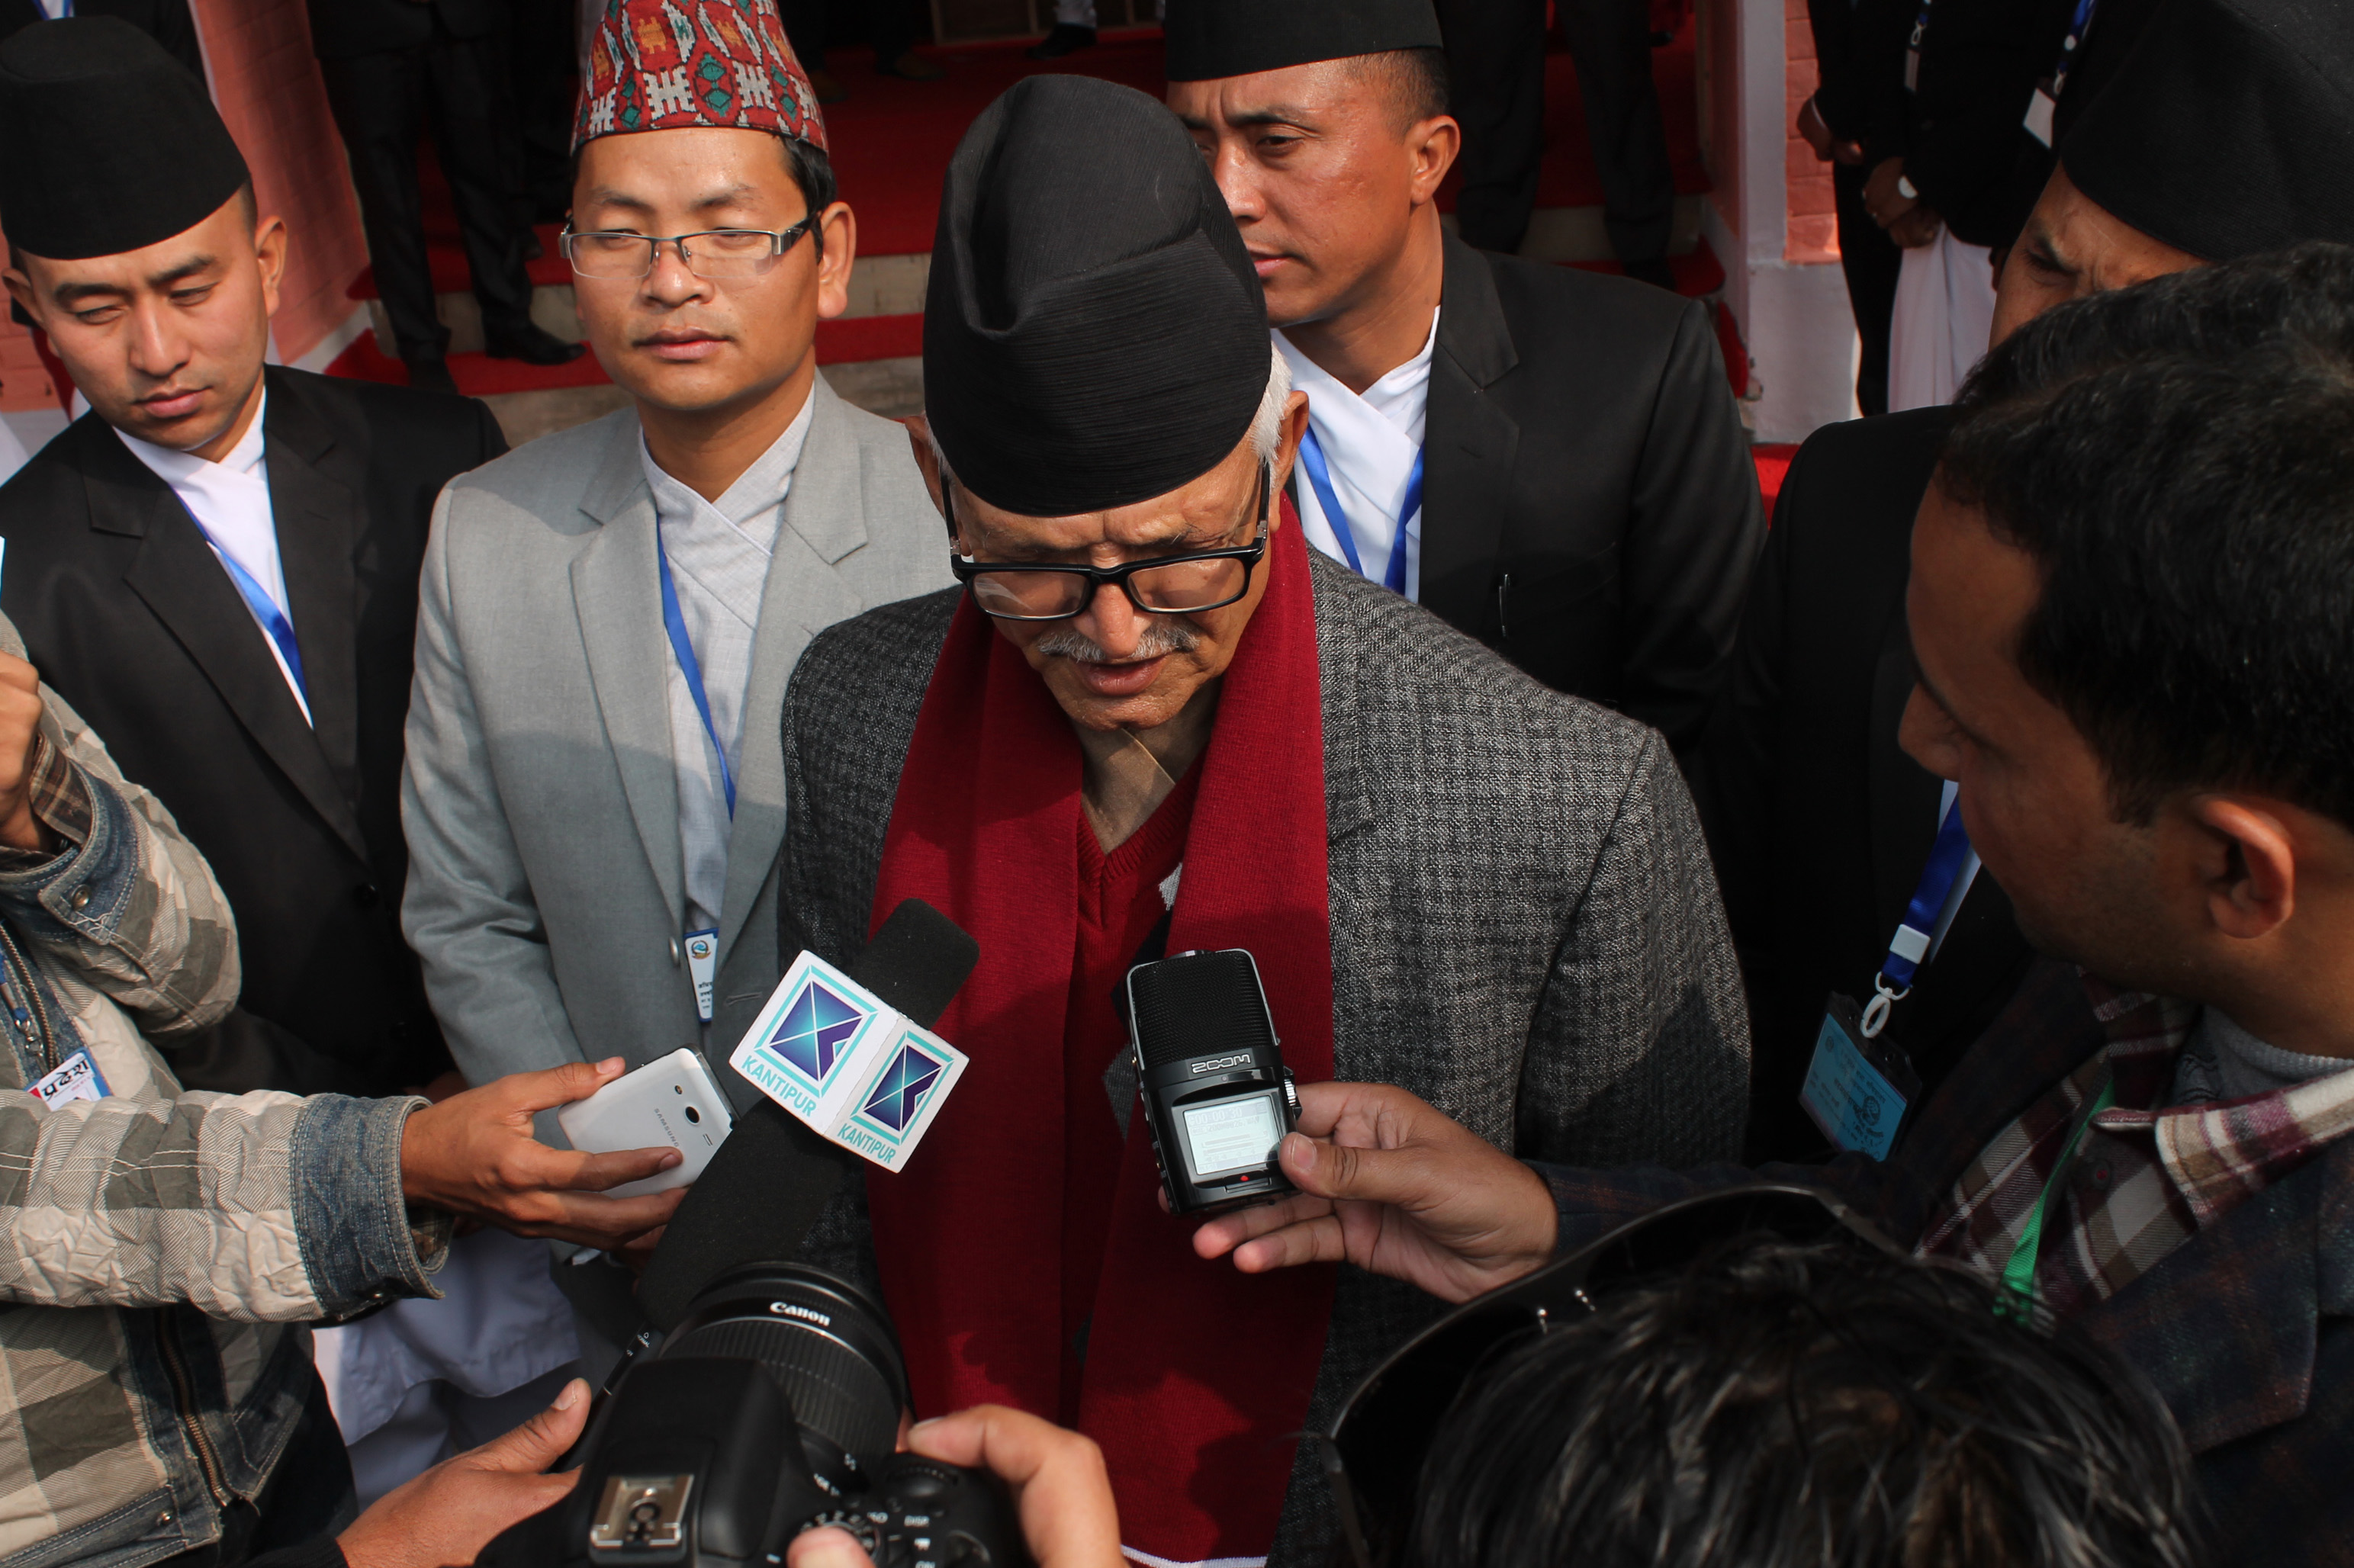 Senior most member of the province 3 Provincial Assembly Dormani Poudel talking to media before the commencement of the meeting held on February 1 at Hetauda, Photo: Prakash Dahal